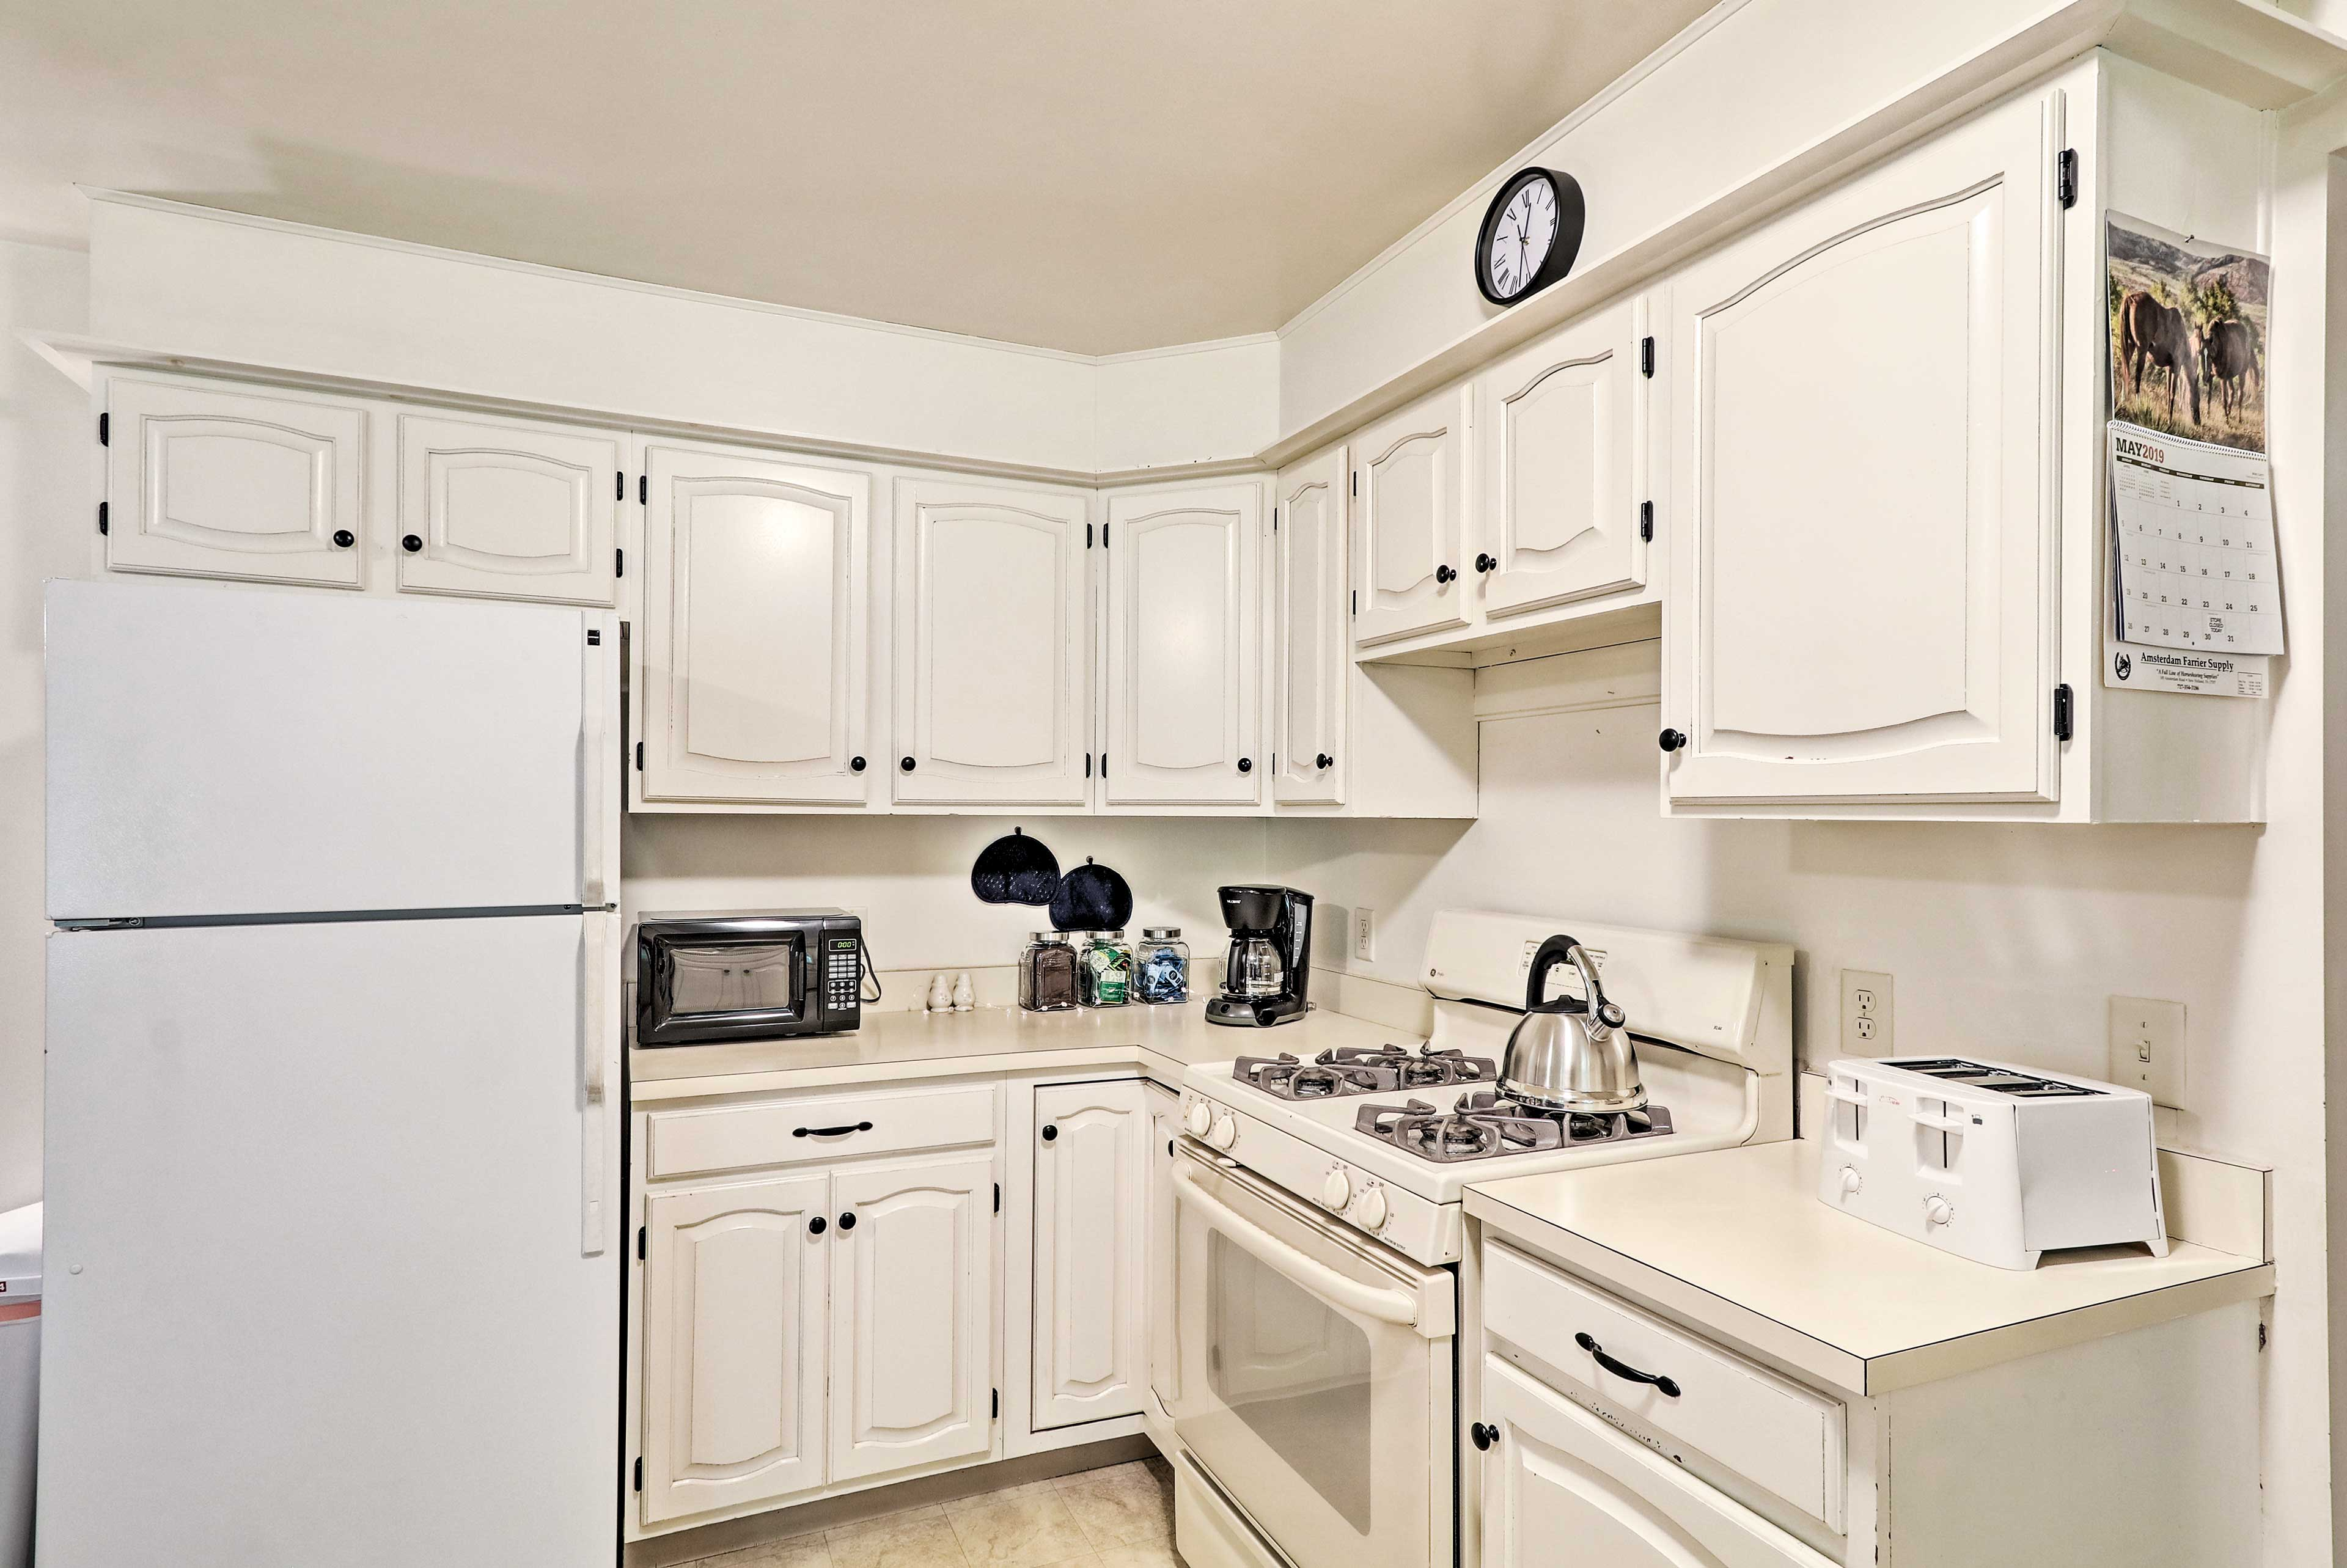 There's even a fully equipped kitchen, perfect for those on a budget.